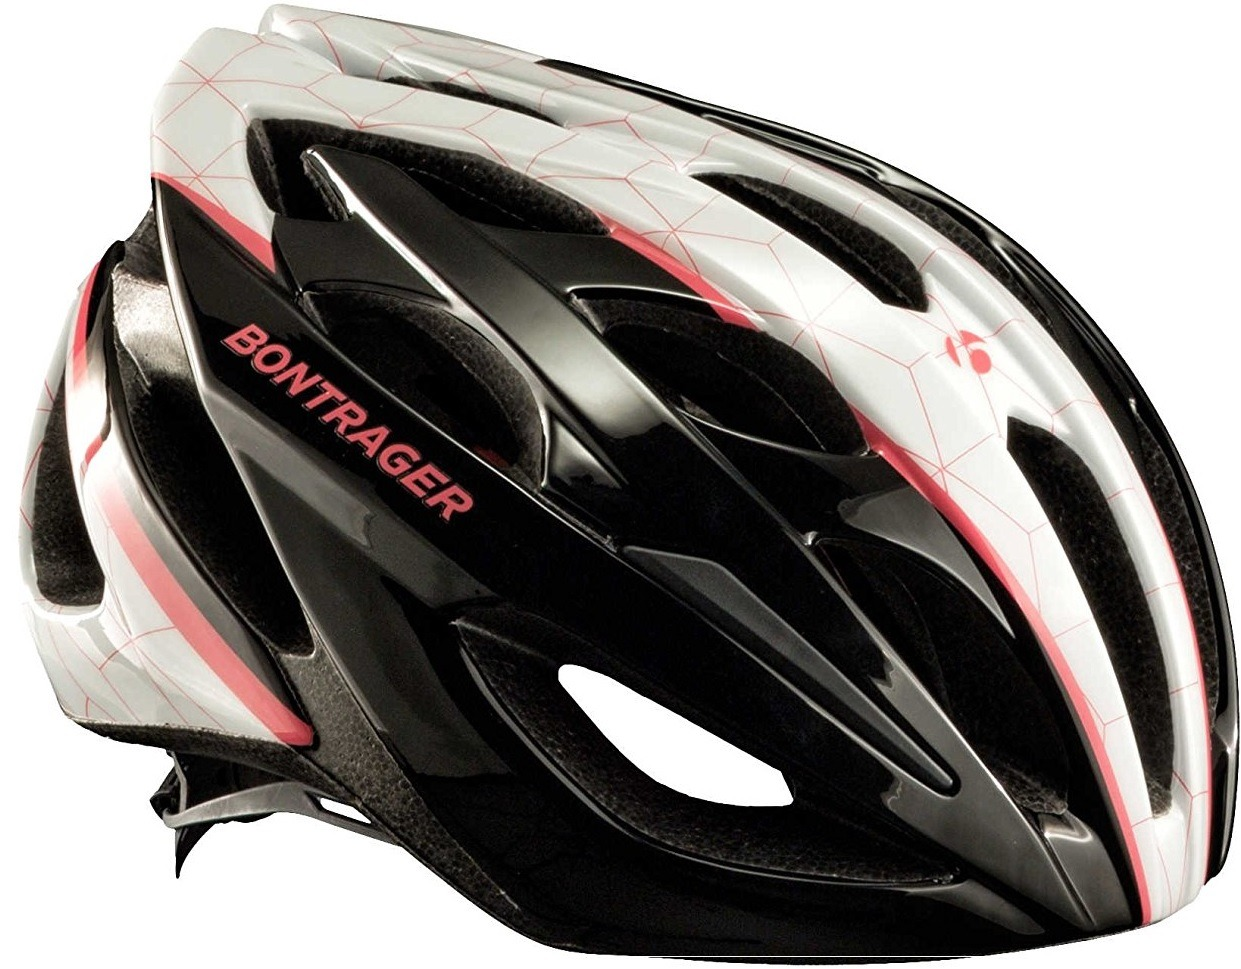 Bontrager Womens Starvos Bicycle Cycling Safety Bike Helmet